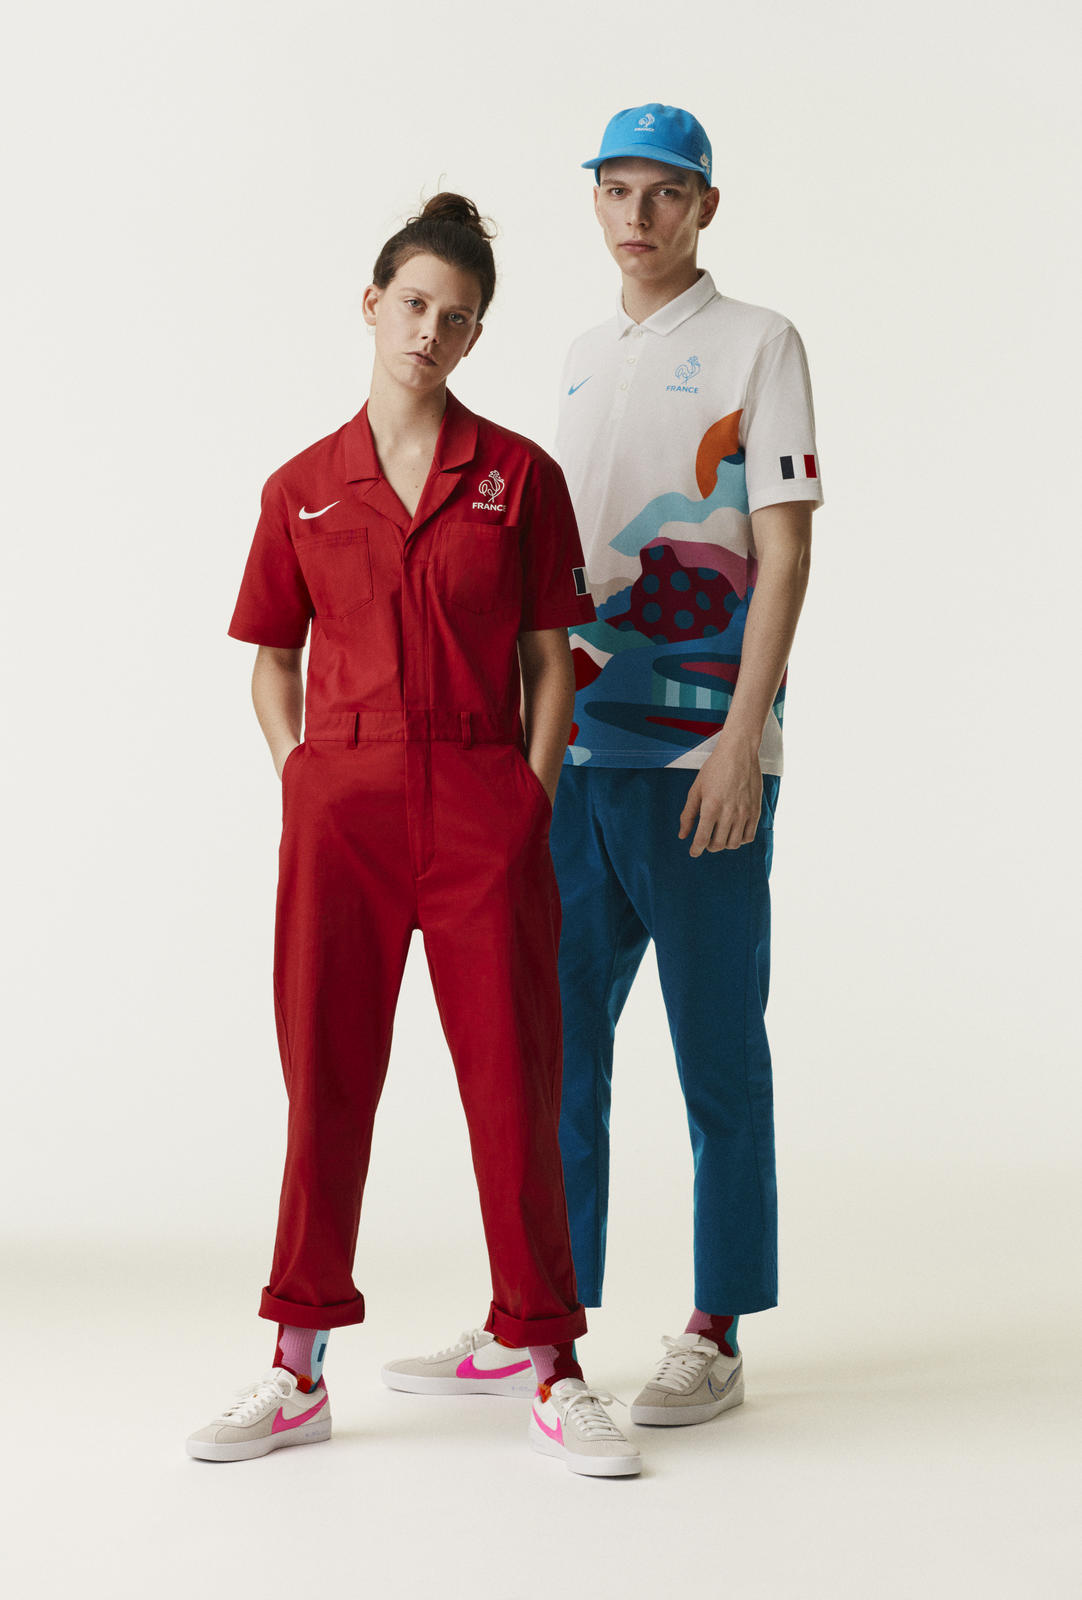 Nike 2020 Forum // Skateboarding Jerseys and Footwear 2